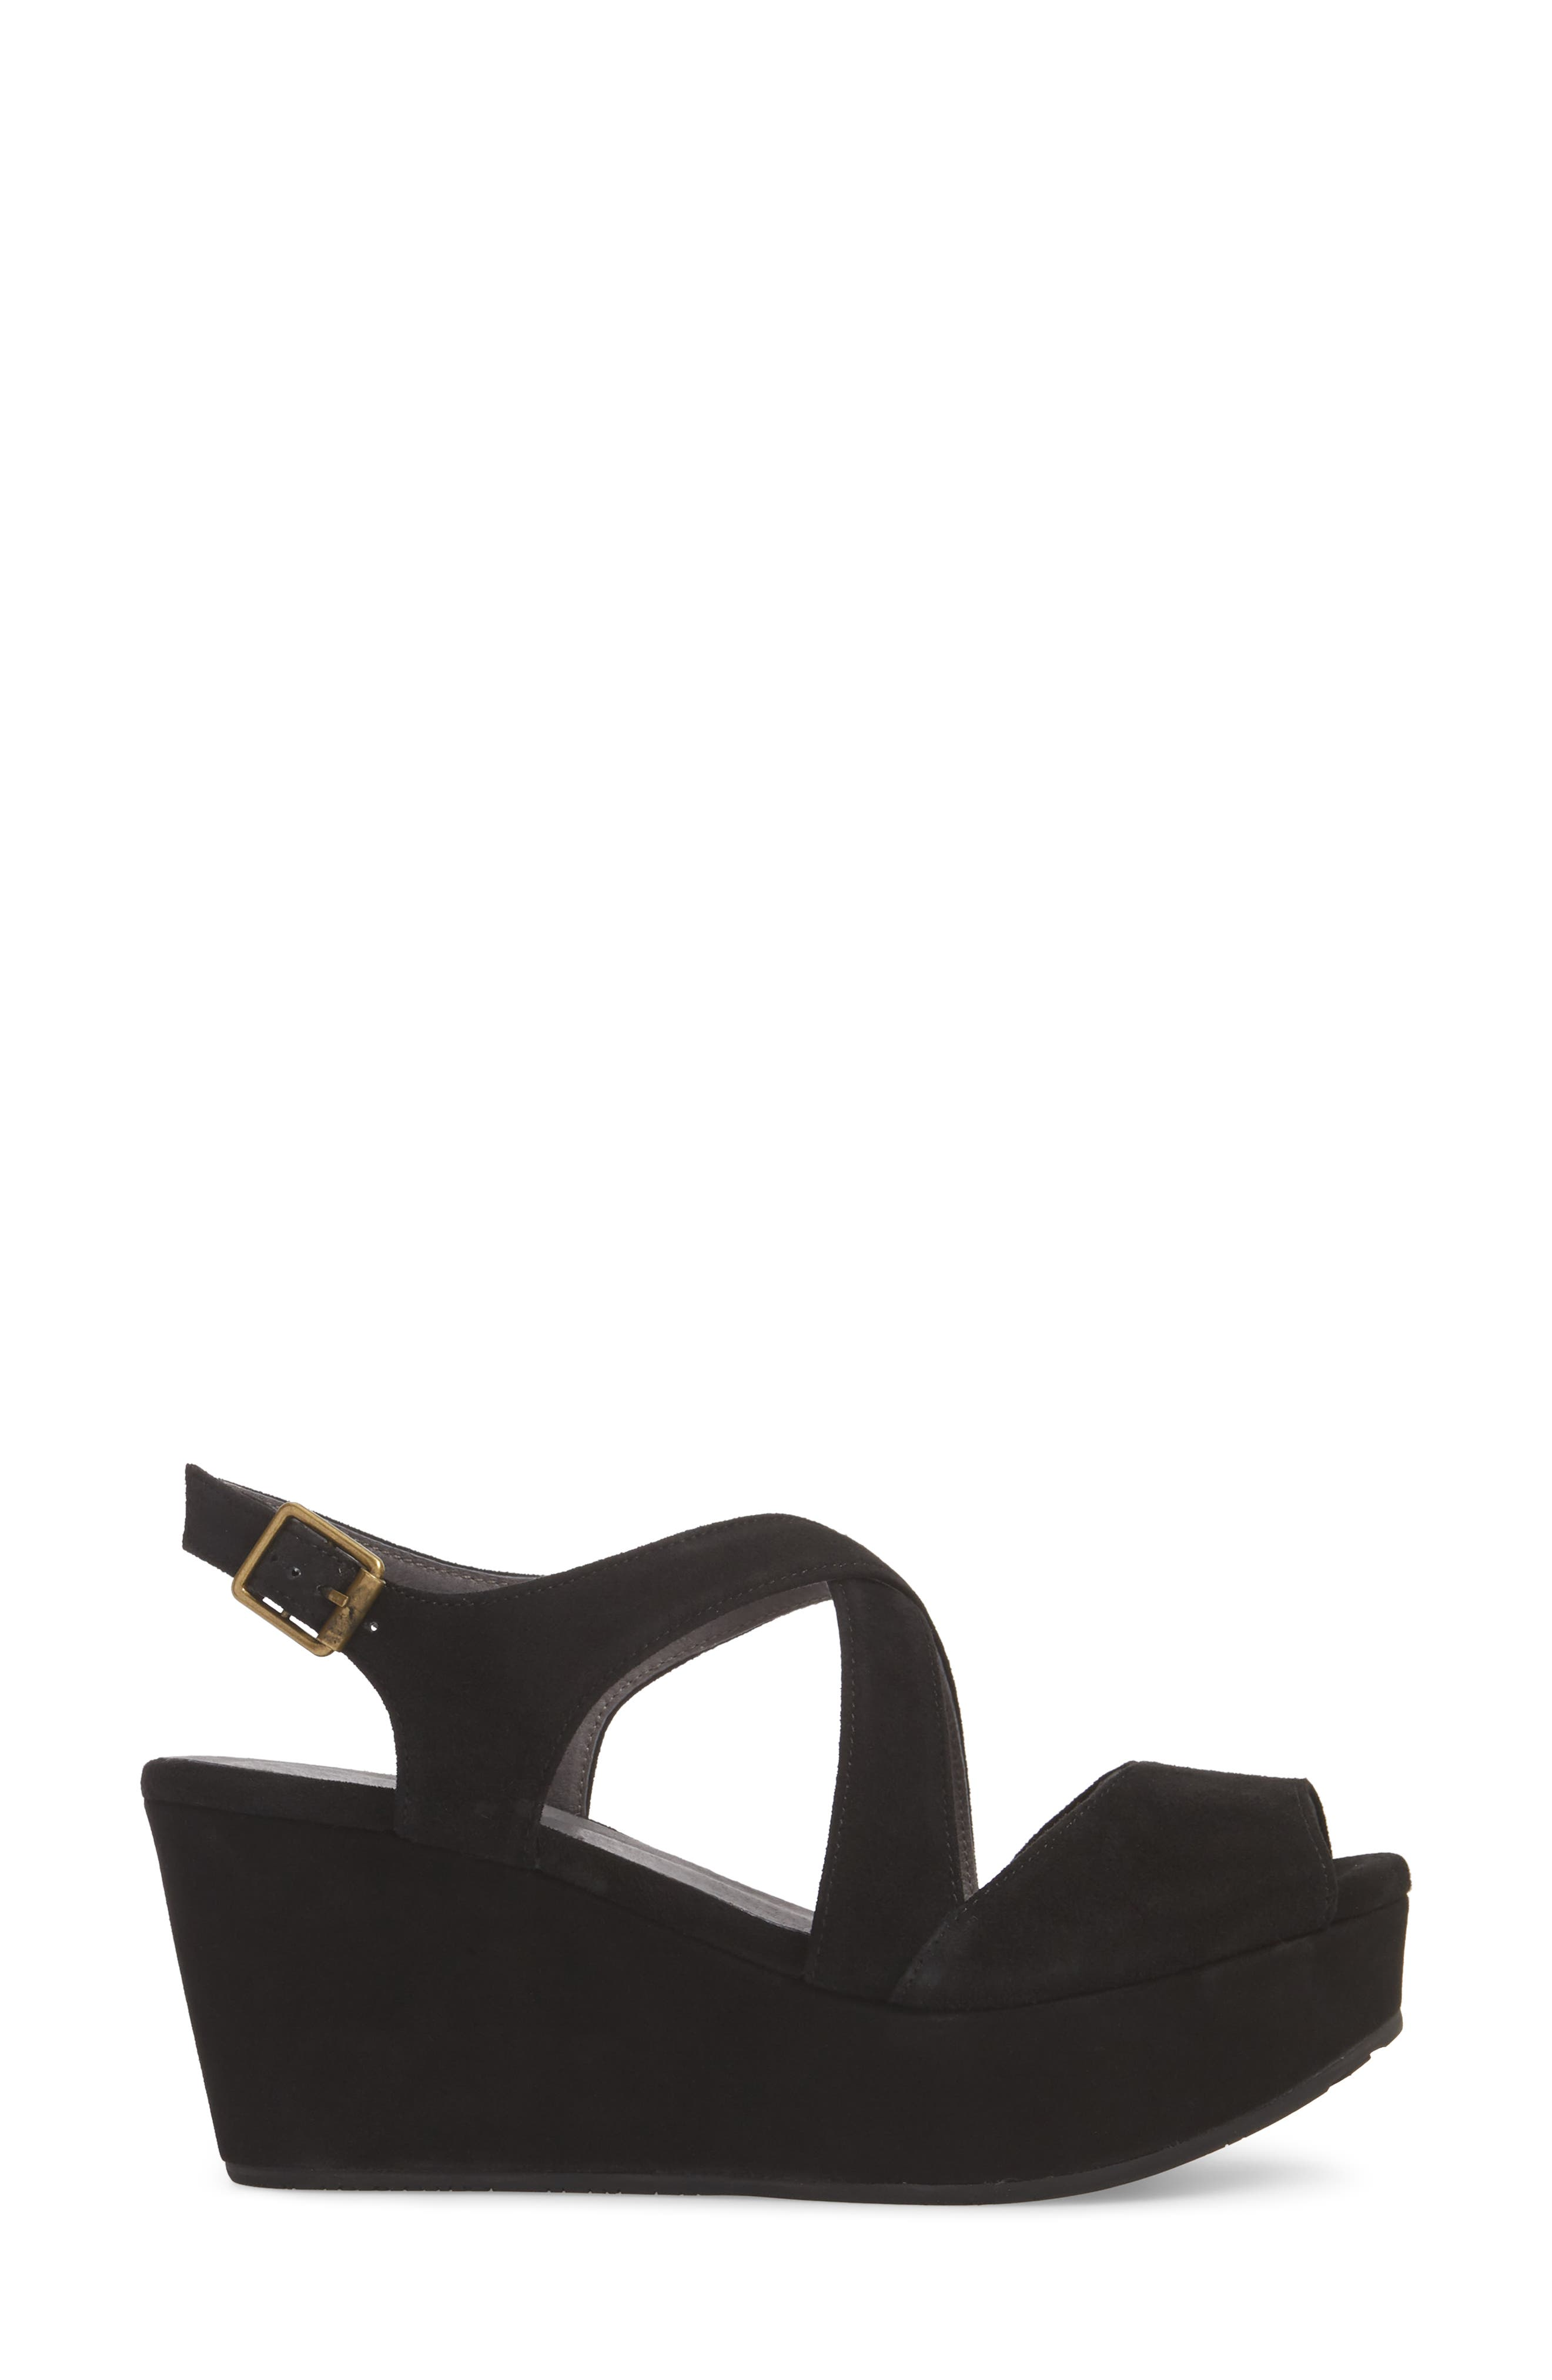 Winnie Wedge Sandal,                             Alternate thumbnail 3, color,                             BLACK SUEDE